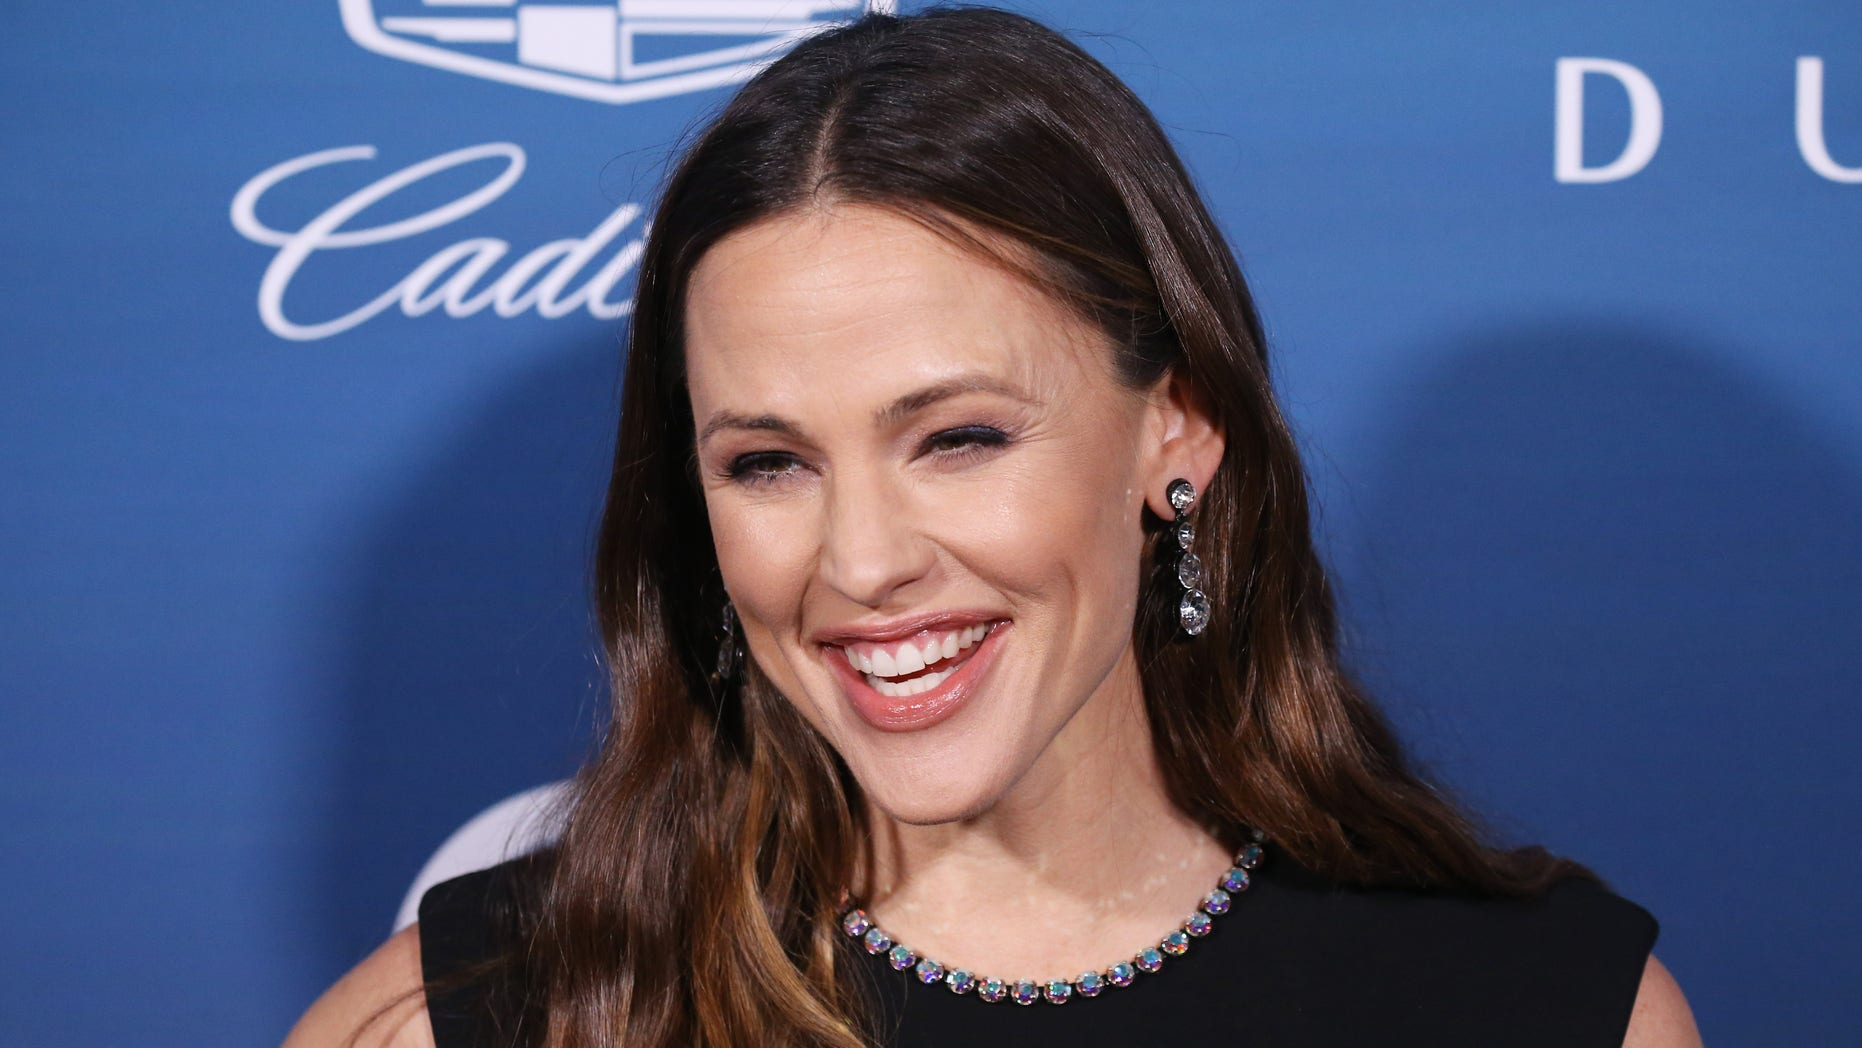 Jennifer Garner shared a hilarious and embarrassing photo for the '10-Year Challenge.'